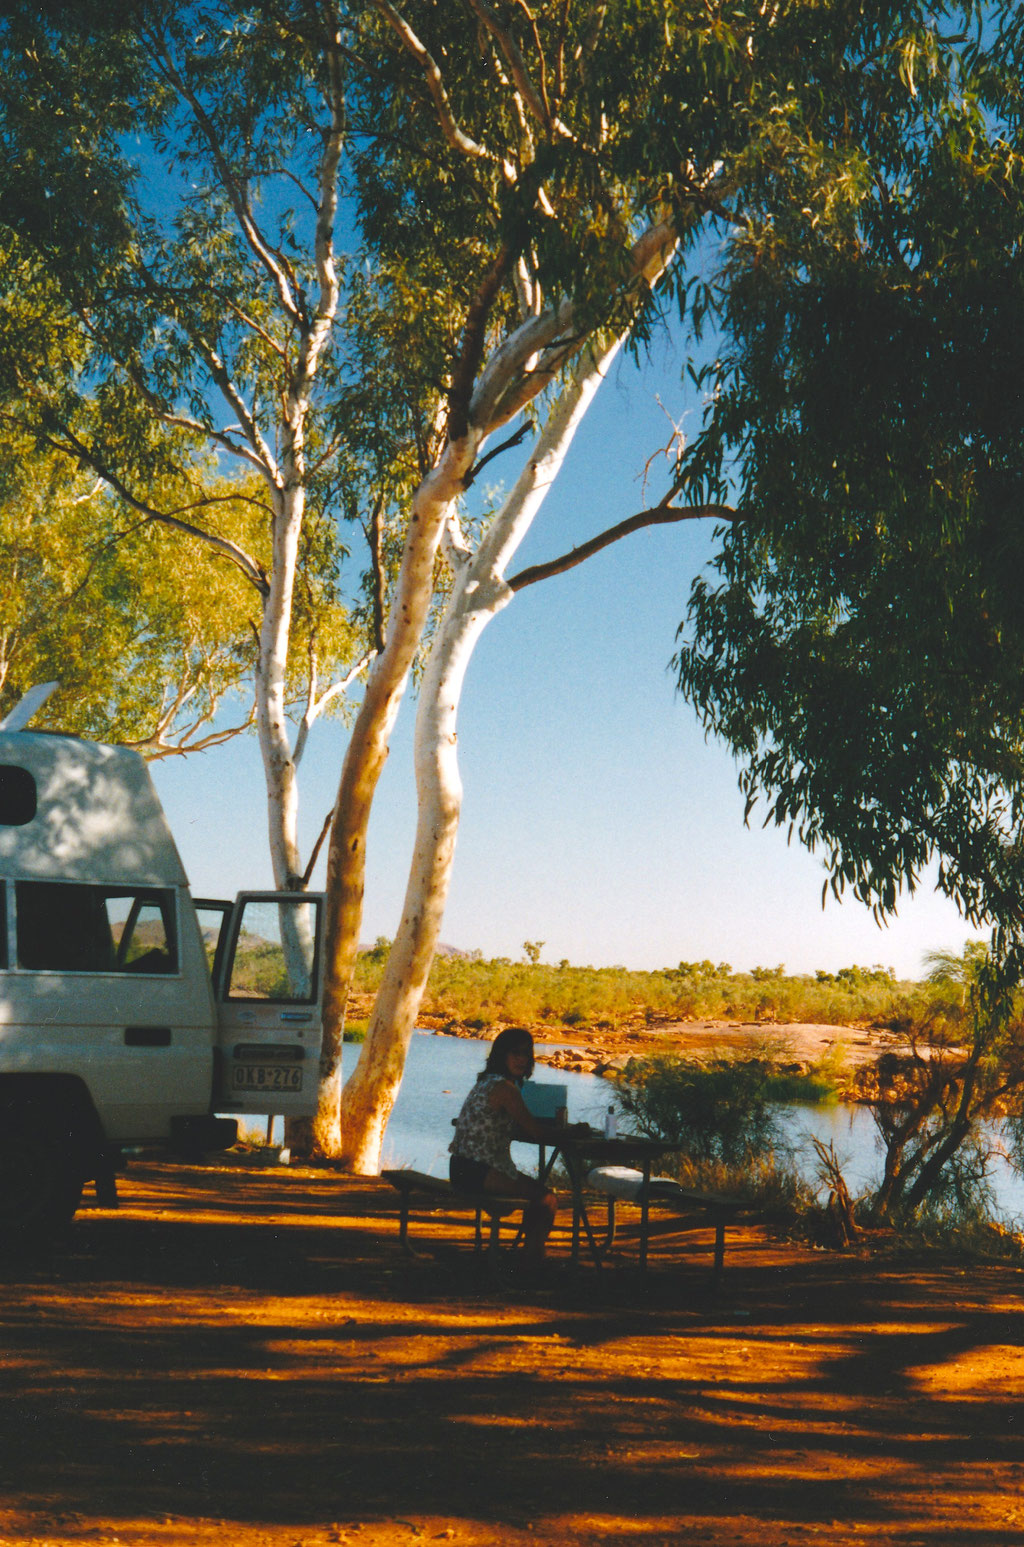 CAMPING AM FORTESCUE RIVER